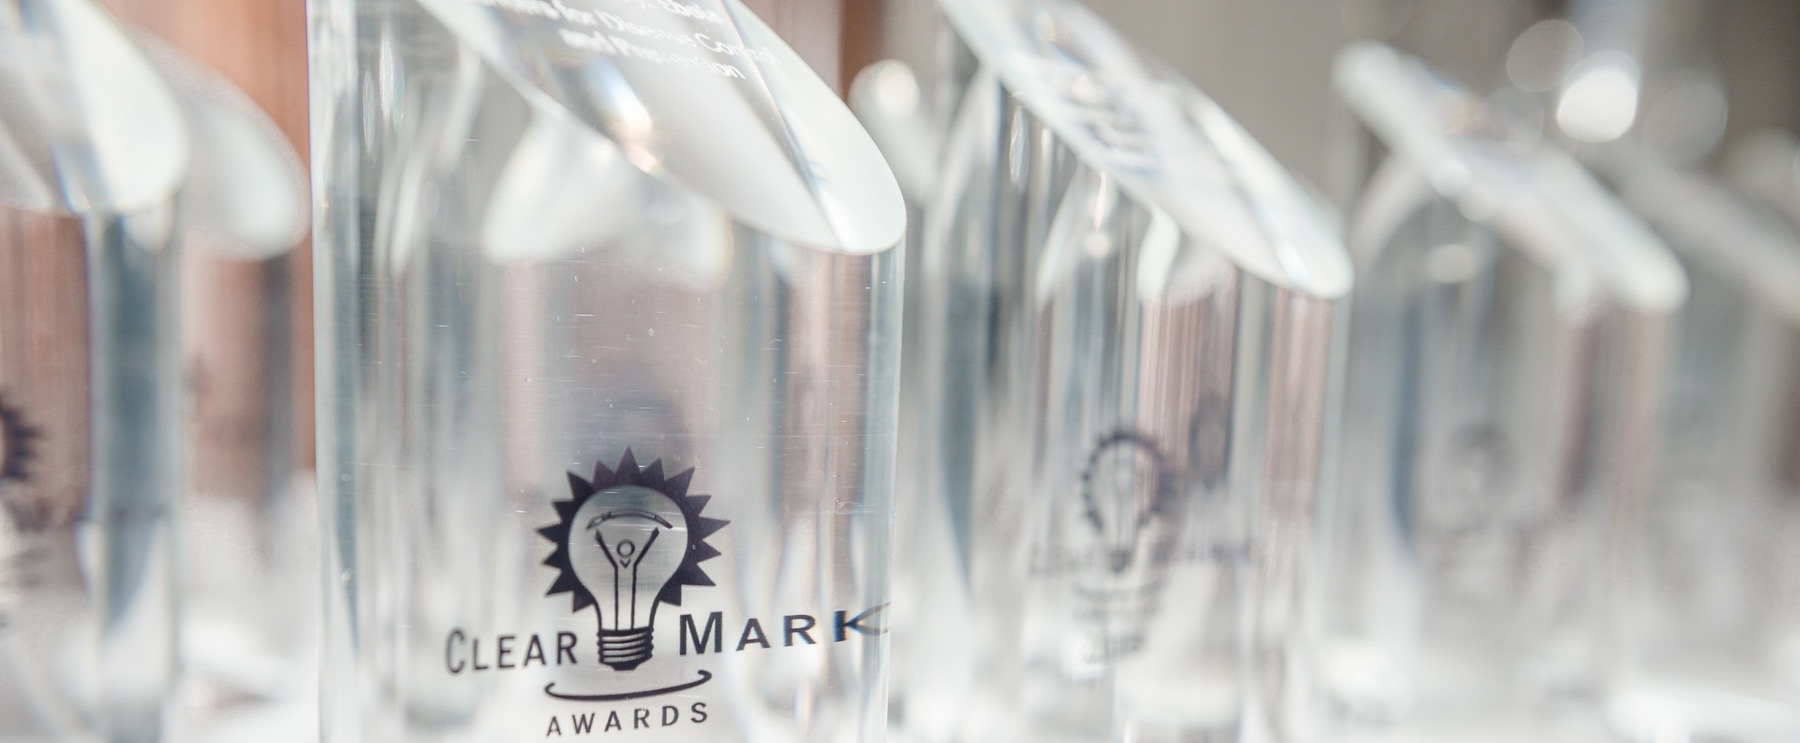 ClearMark Awards Category Winners Trophies